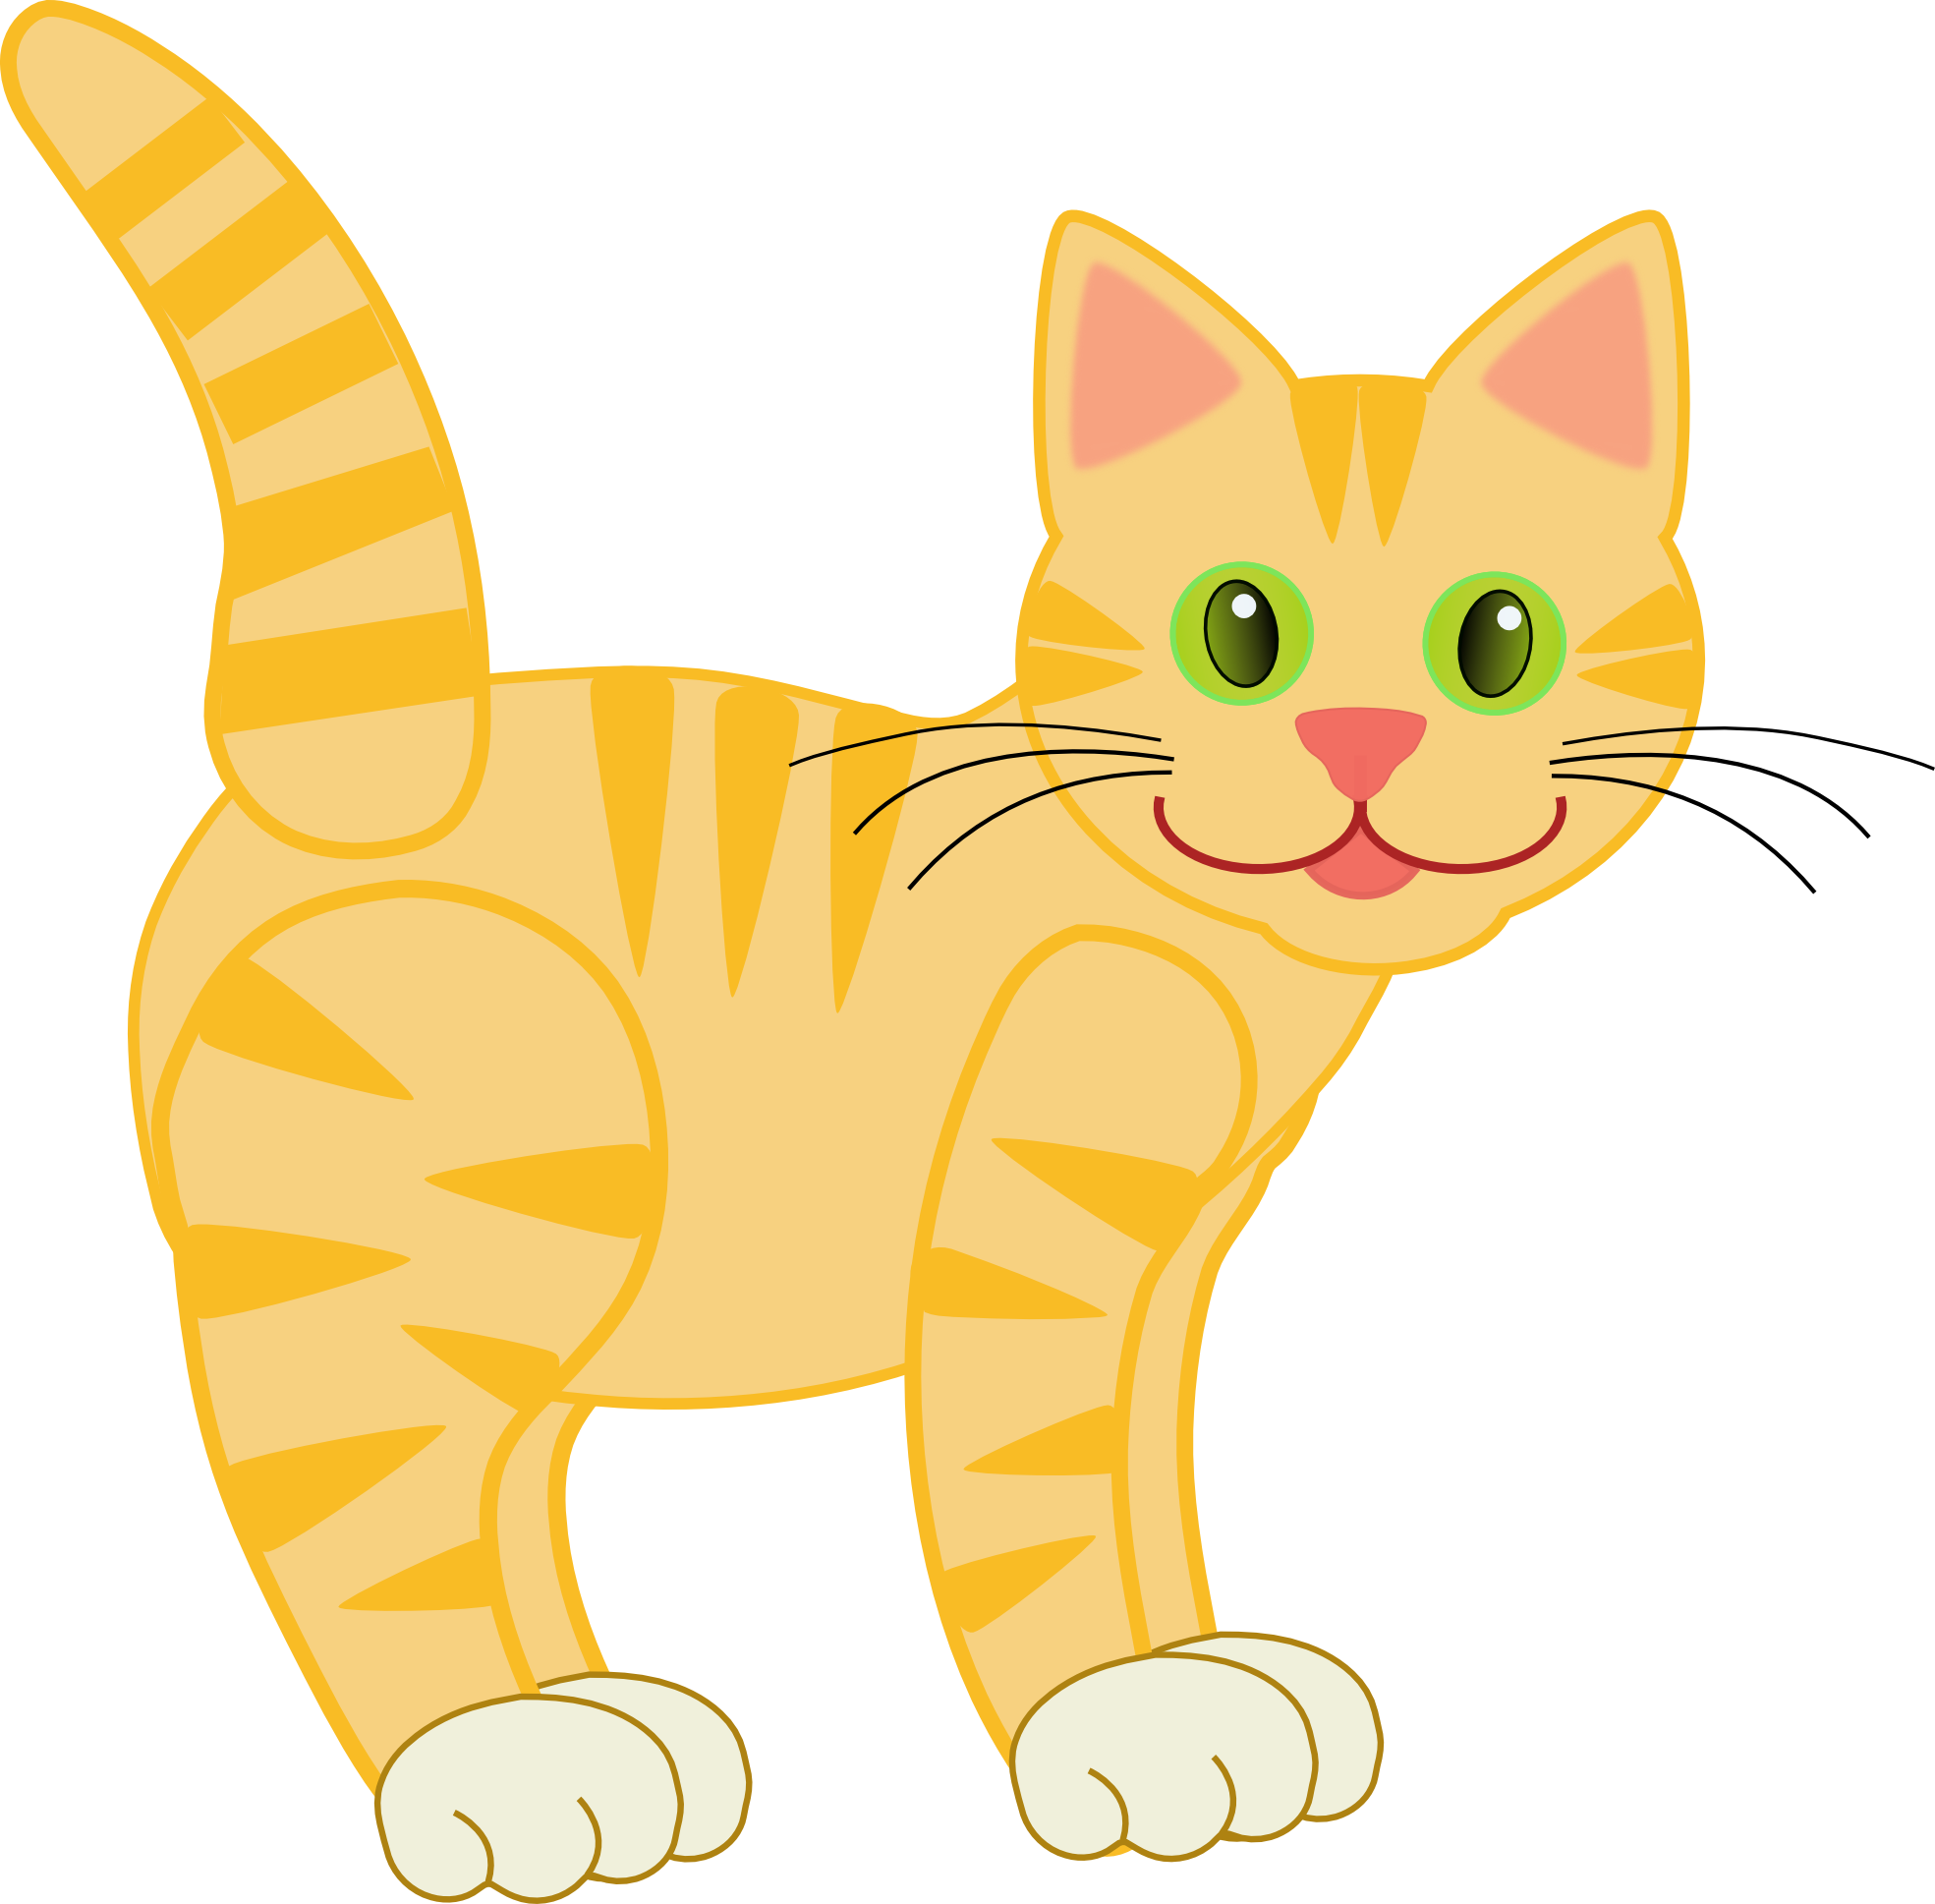 Pet clipart cat fur. Clip art version yellow